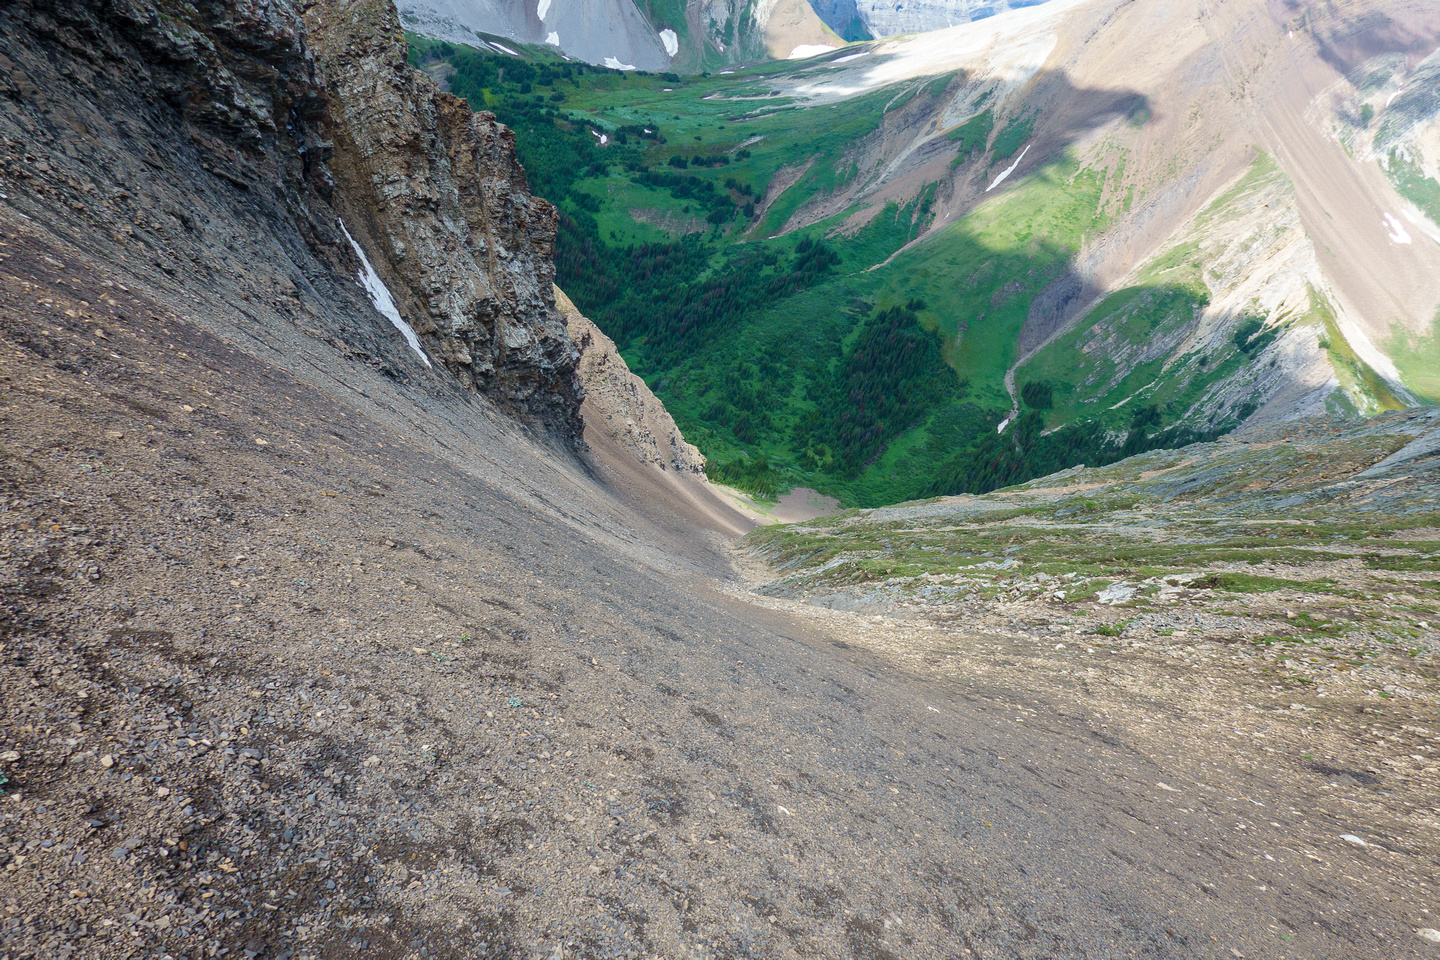 Descending to the valley on easy scree.